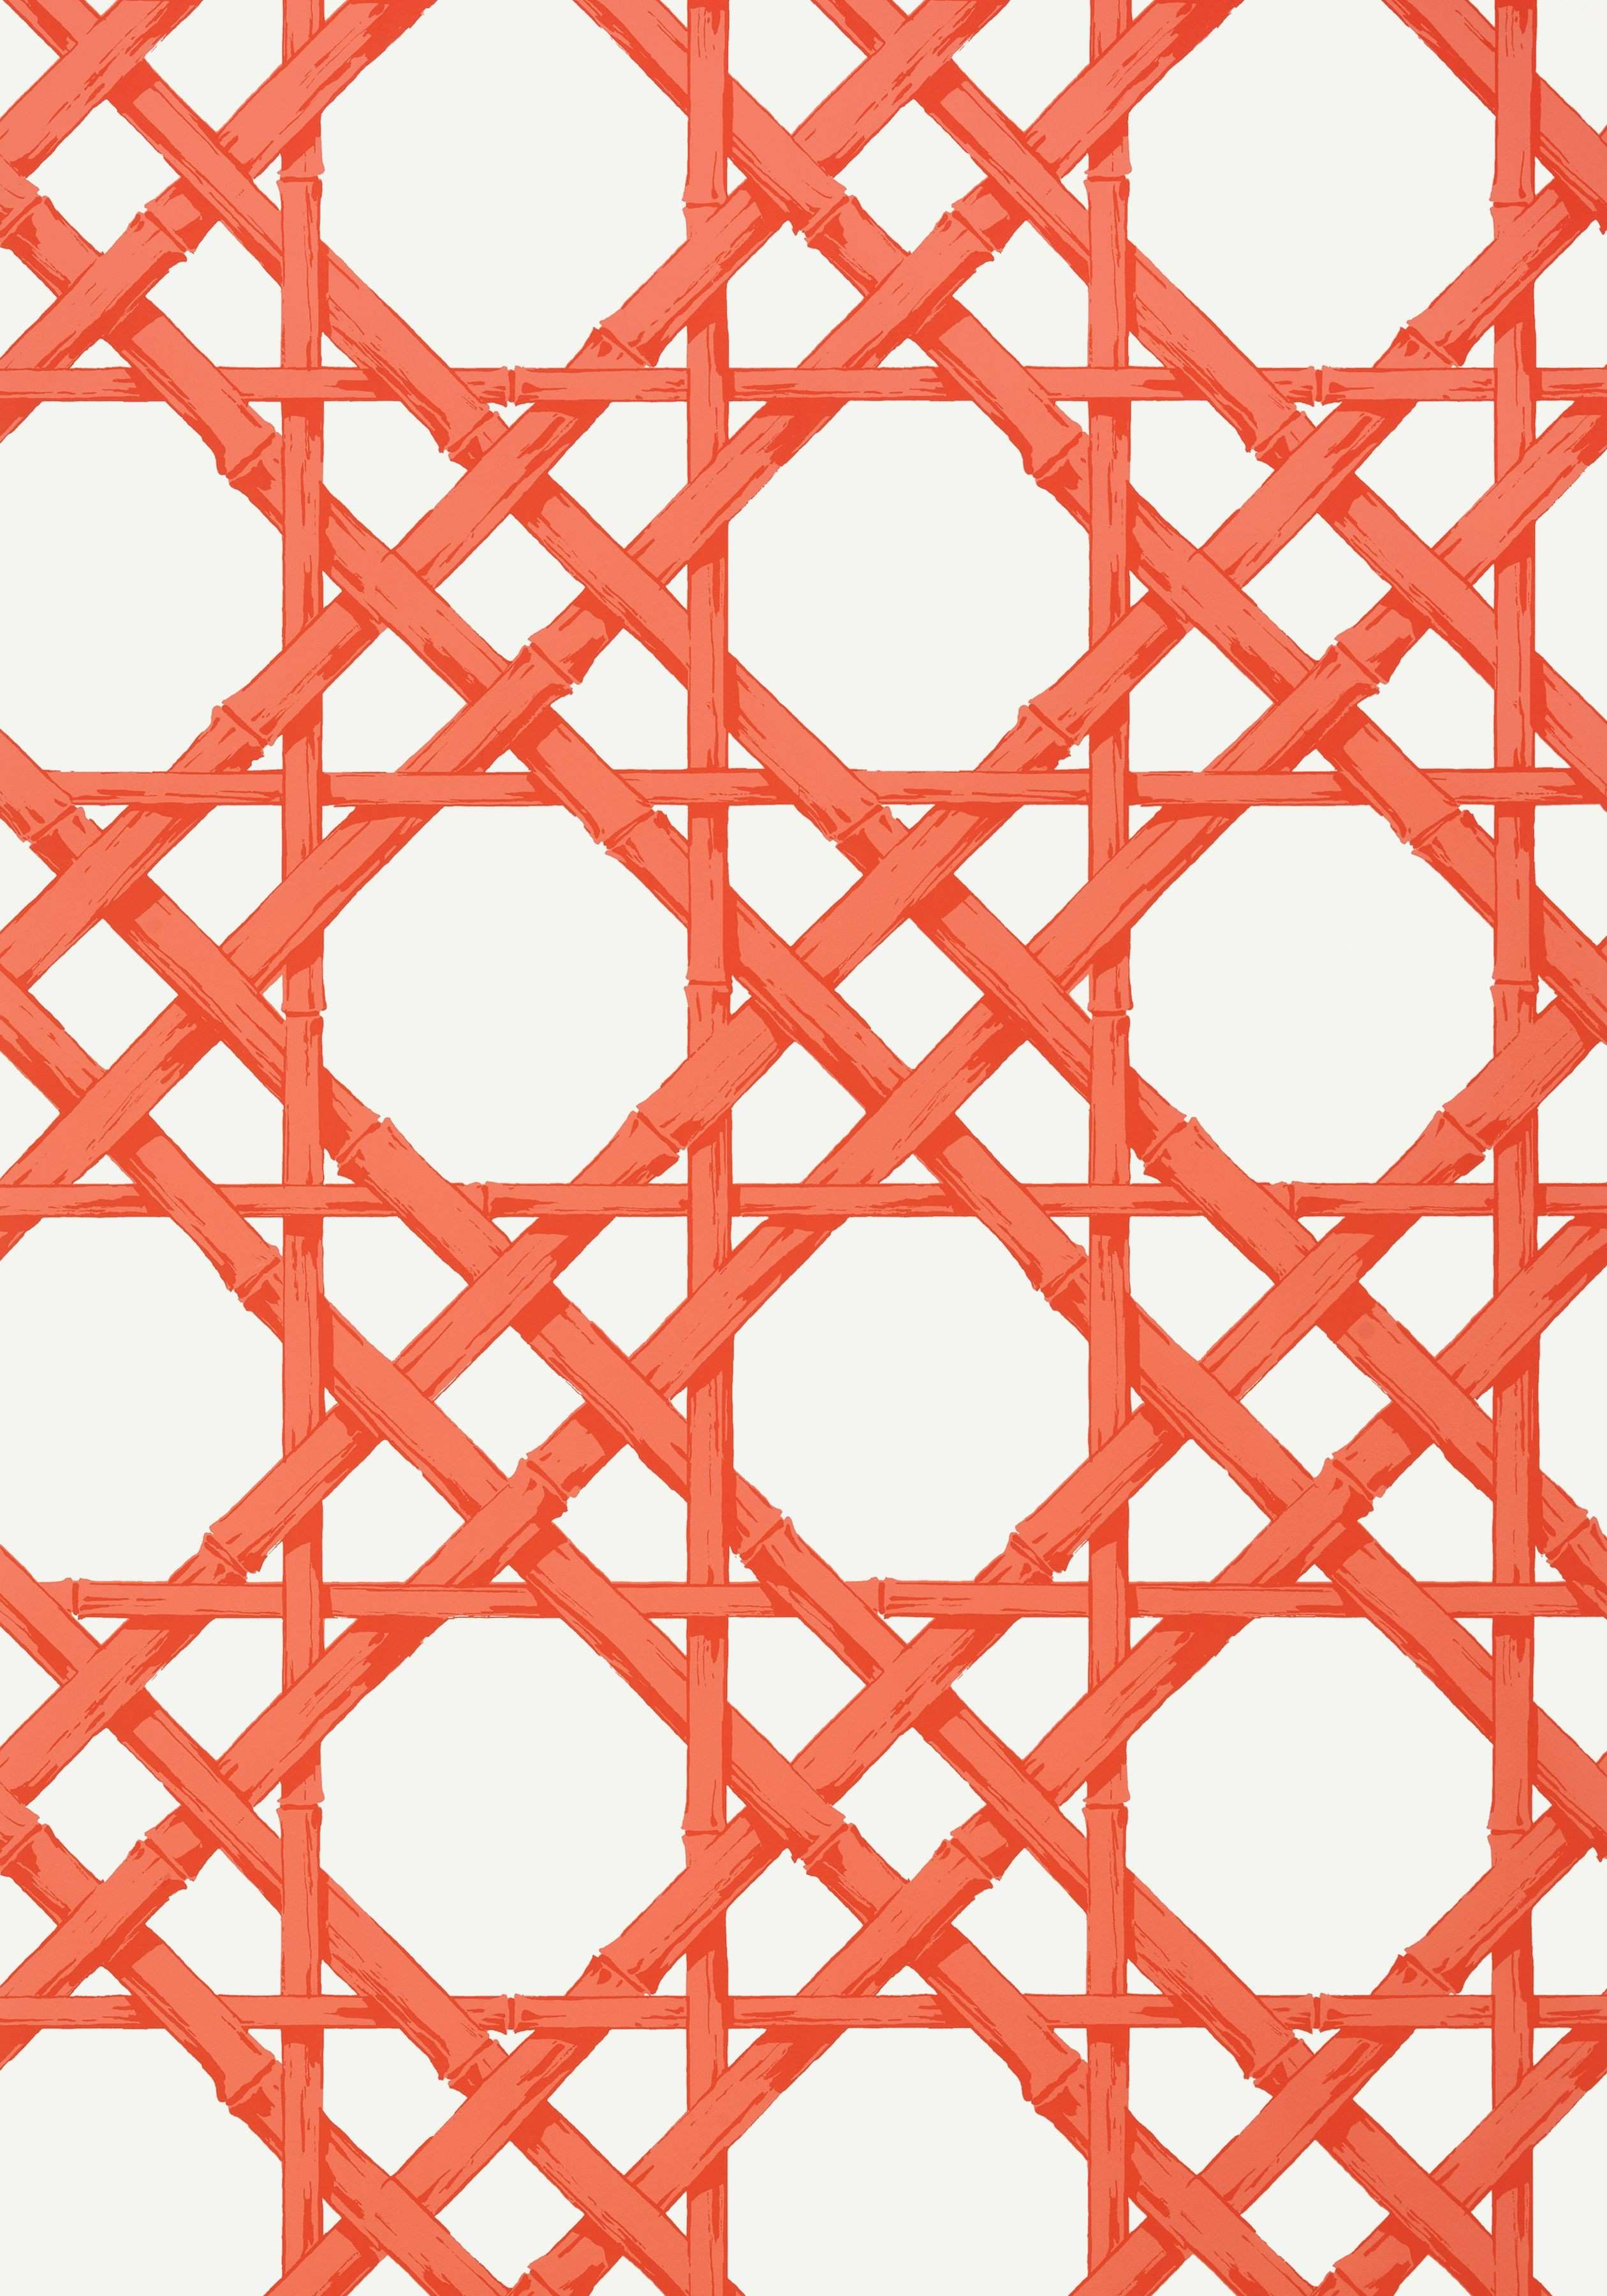 CYRUS CANE Coral T Collection Summer House from Thibaut